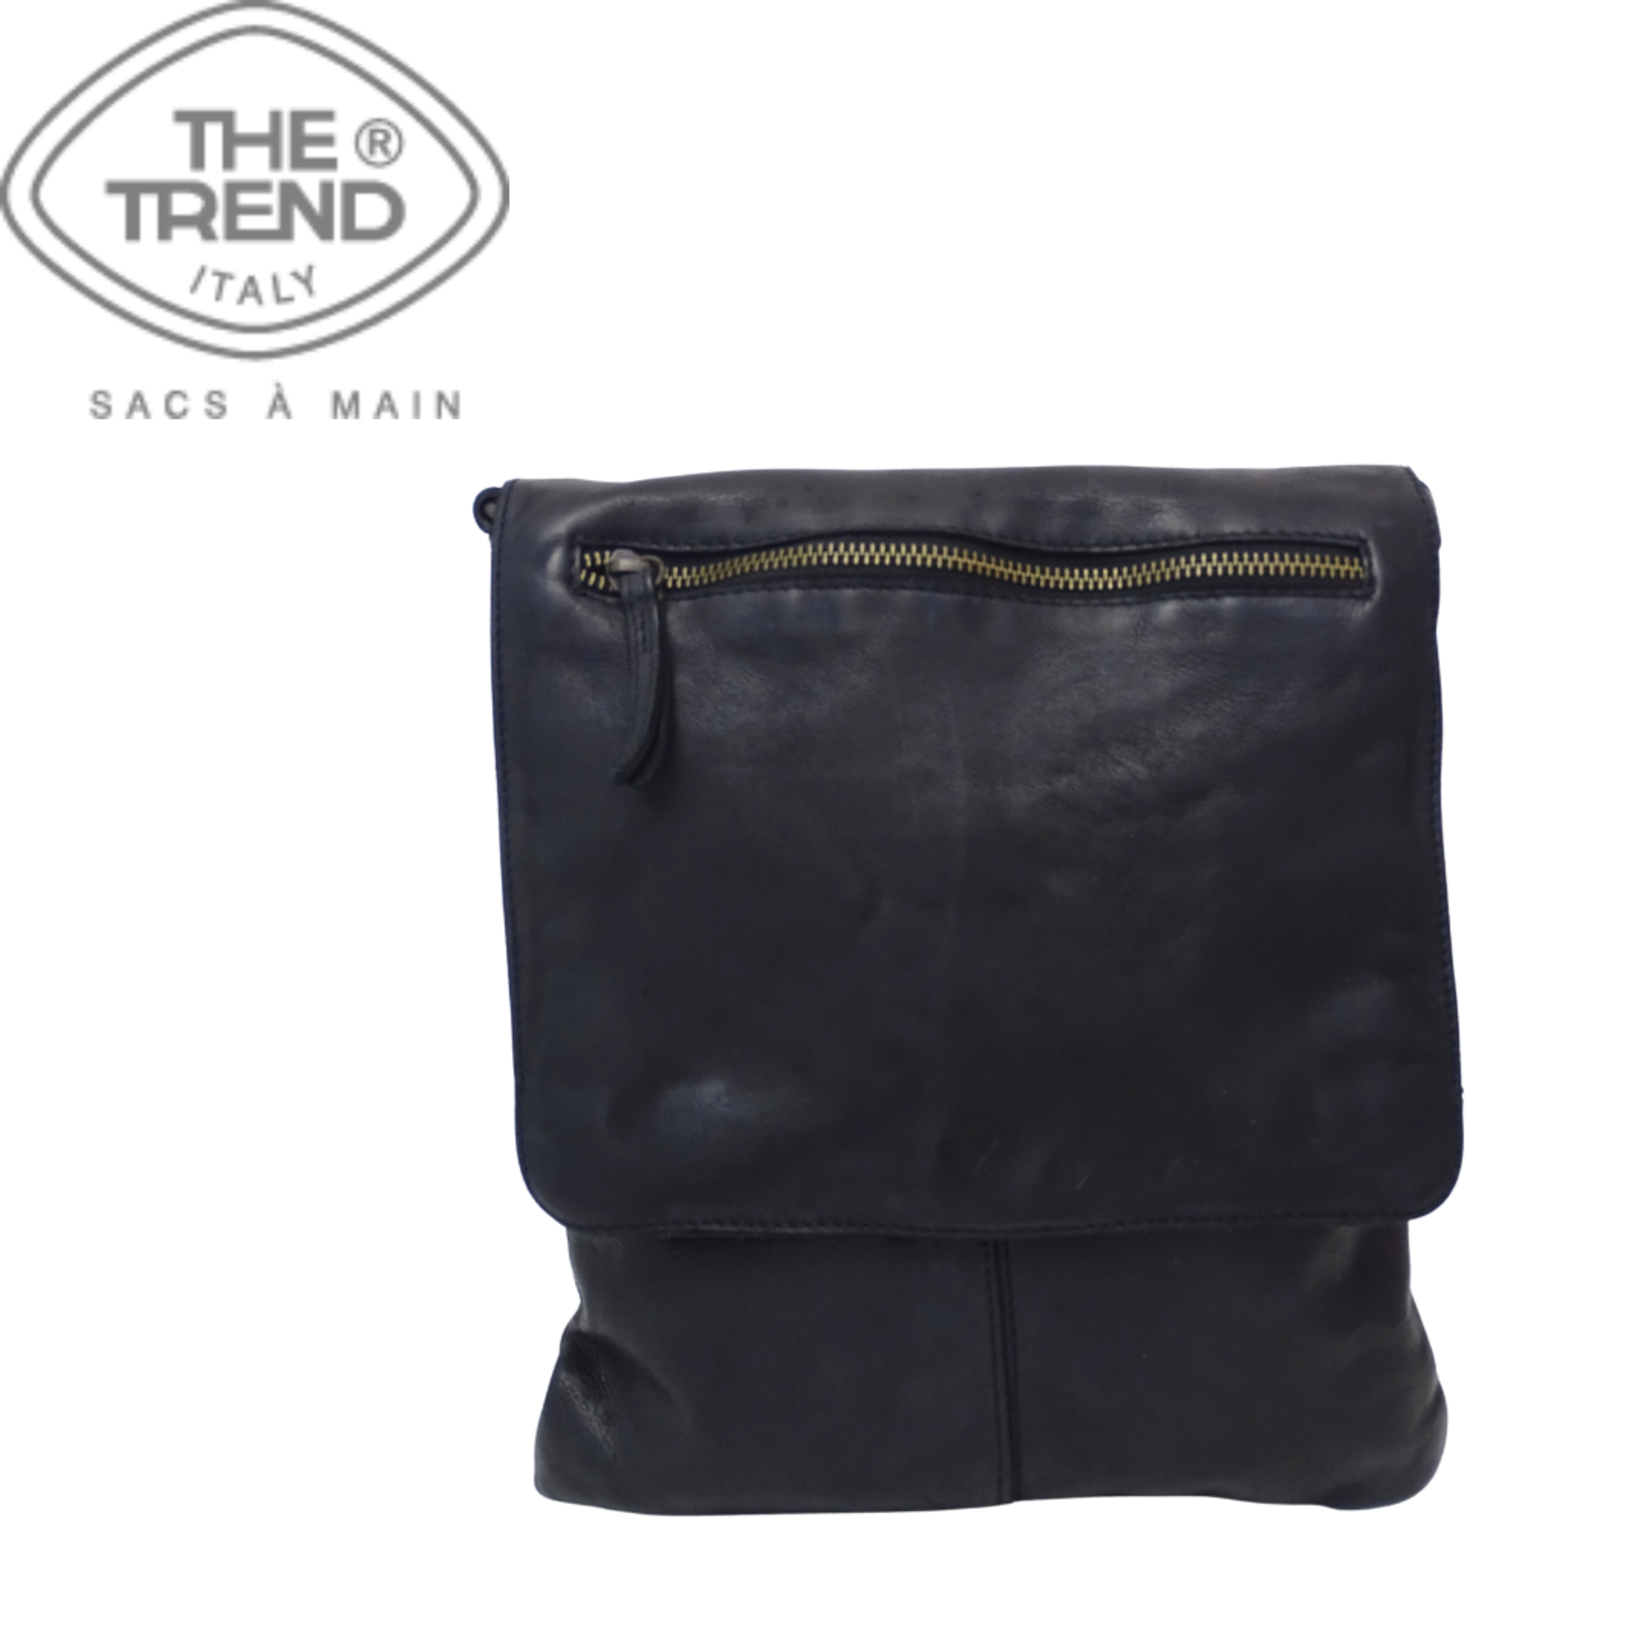 The Trend The Trend 22740 black